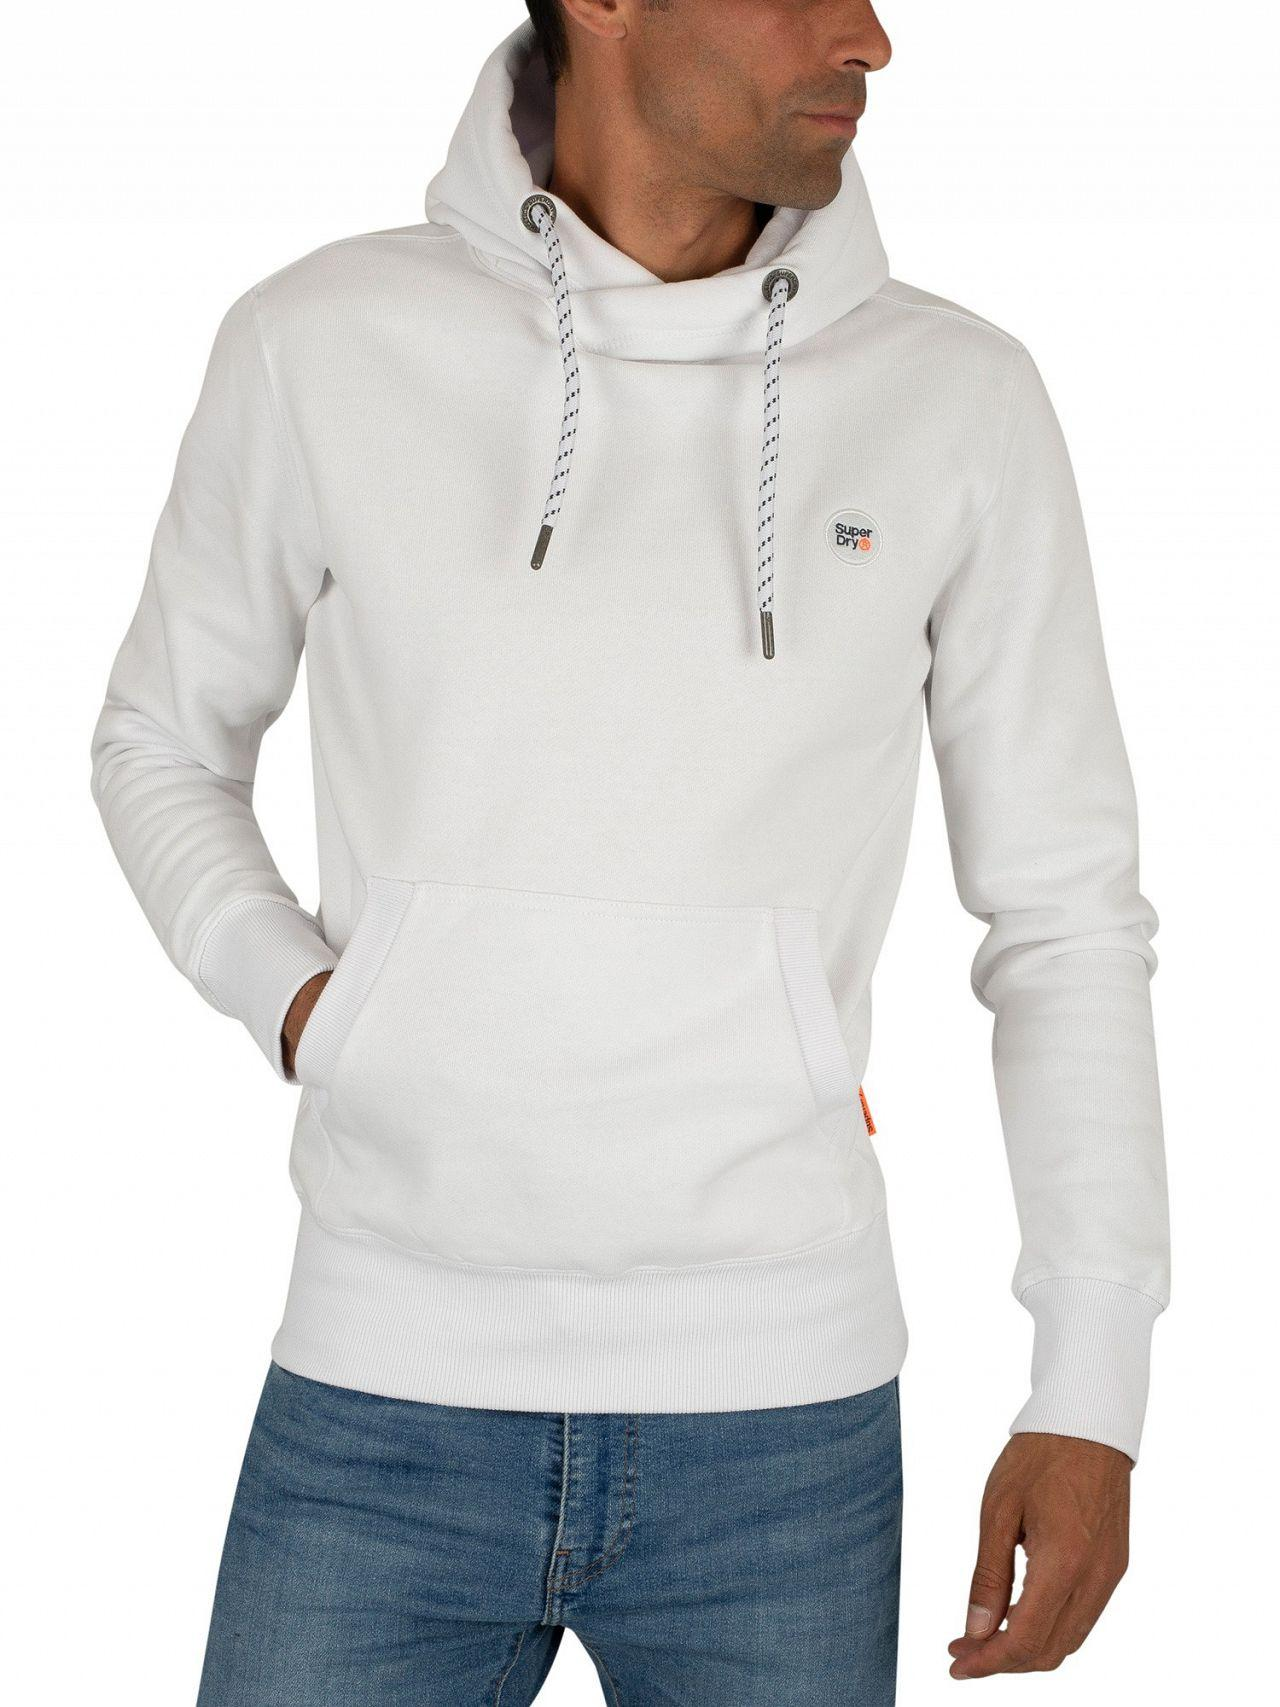 85b175ff Superdry - Multicolor Optic Collective Pullover Hoodie for Men - Lyst. View  fullscreen